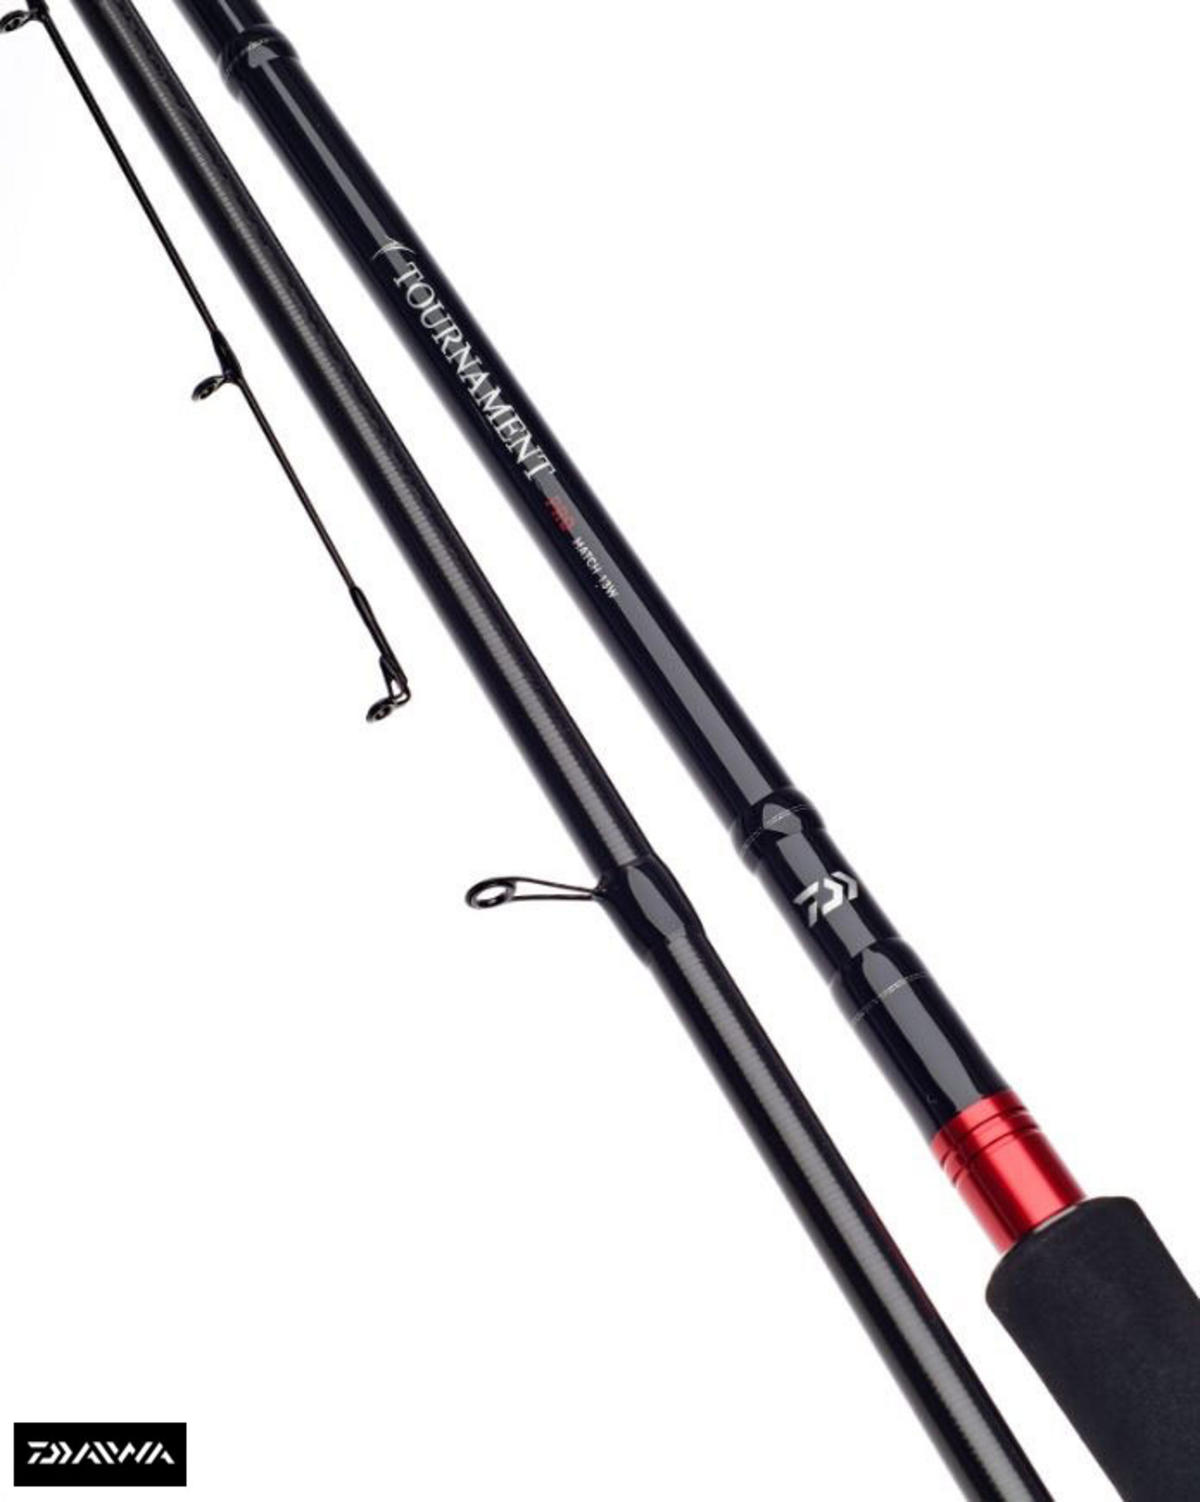 New Daiwa Tournament Pro Match Rods - All Models / Sizes